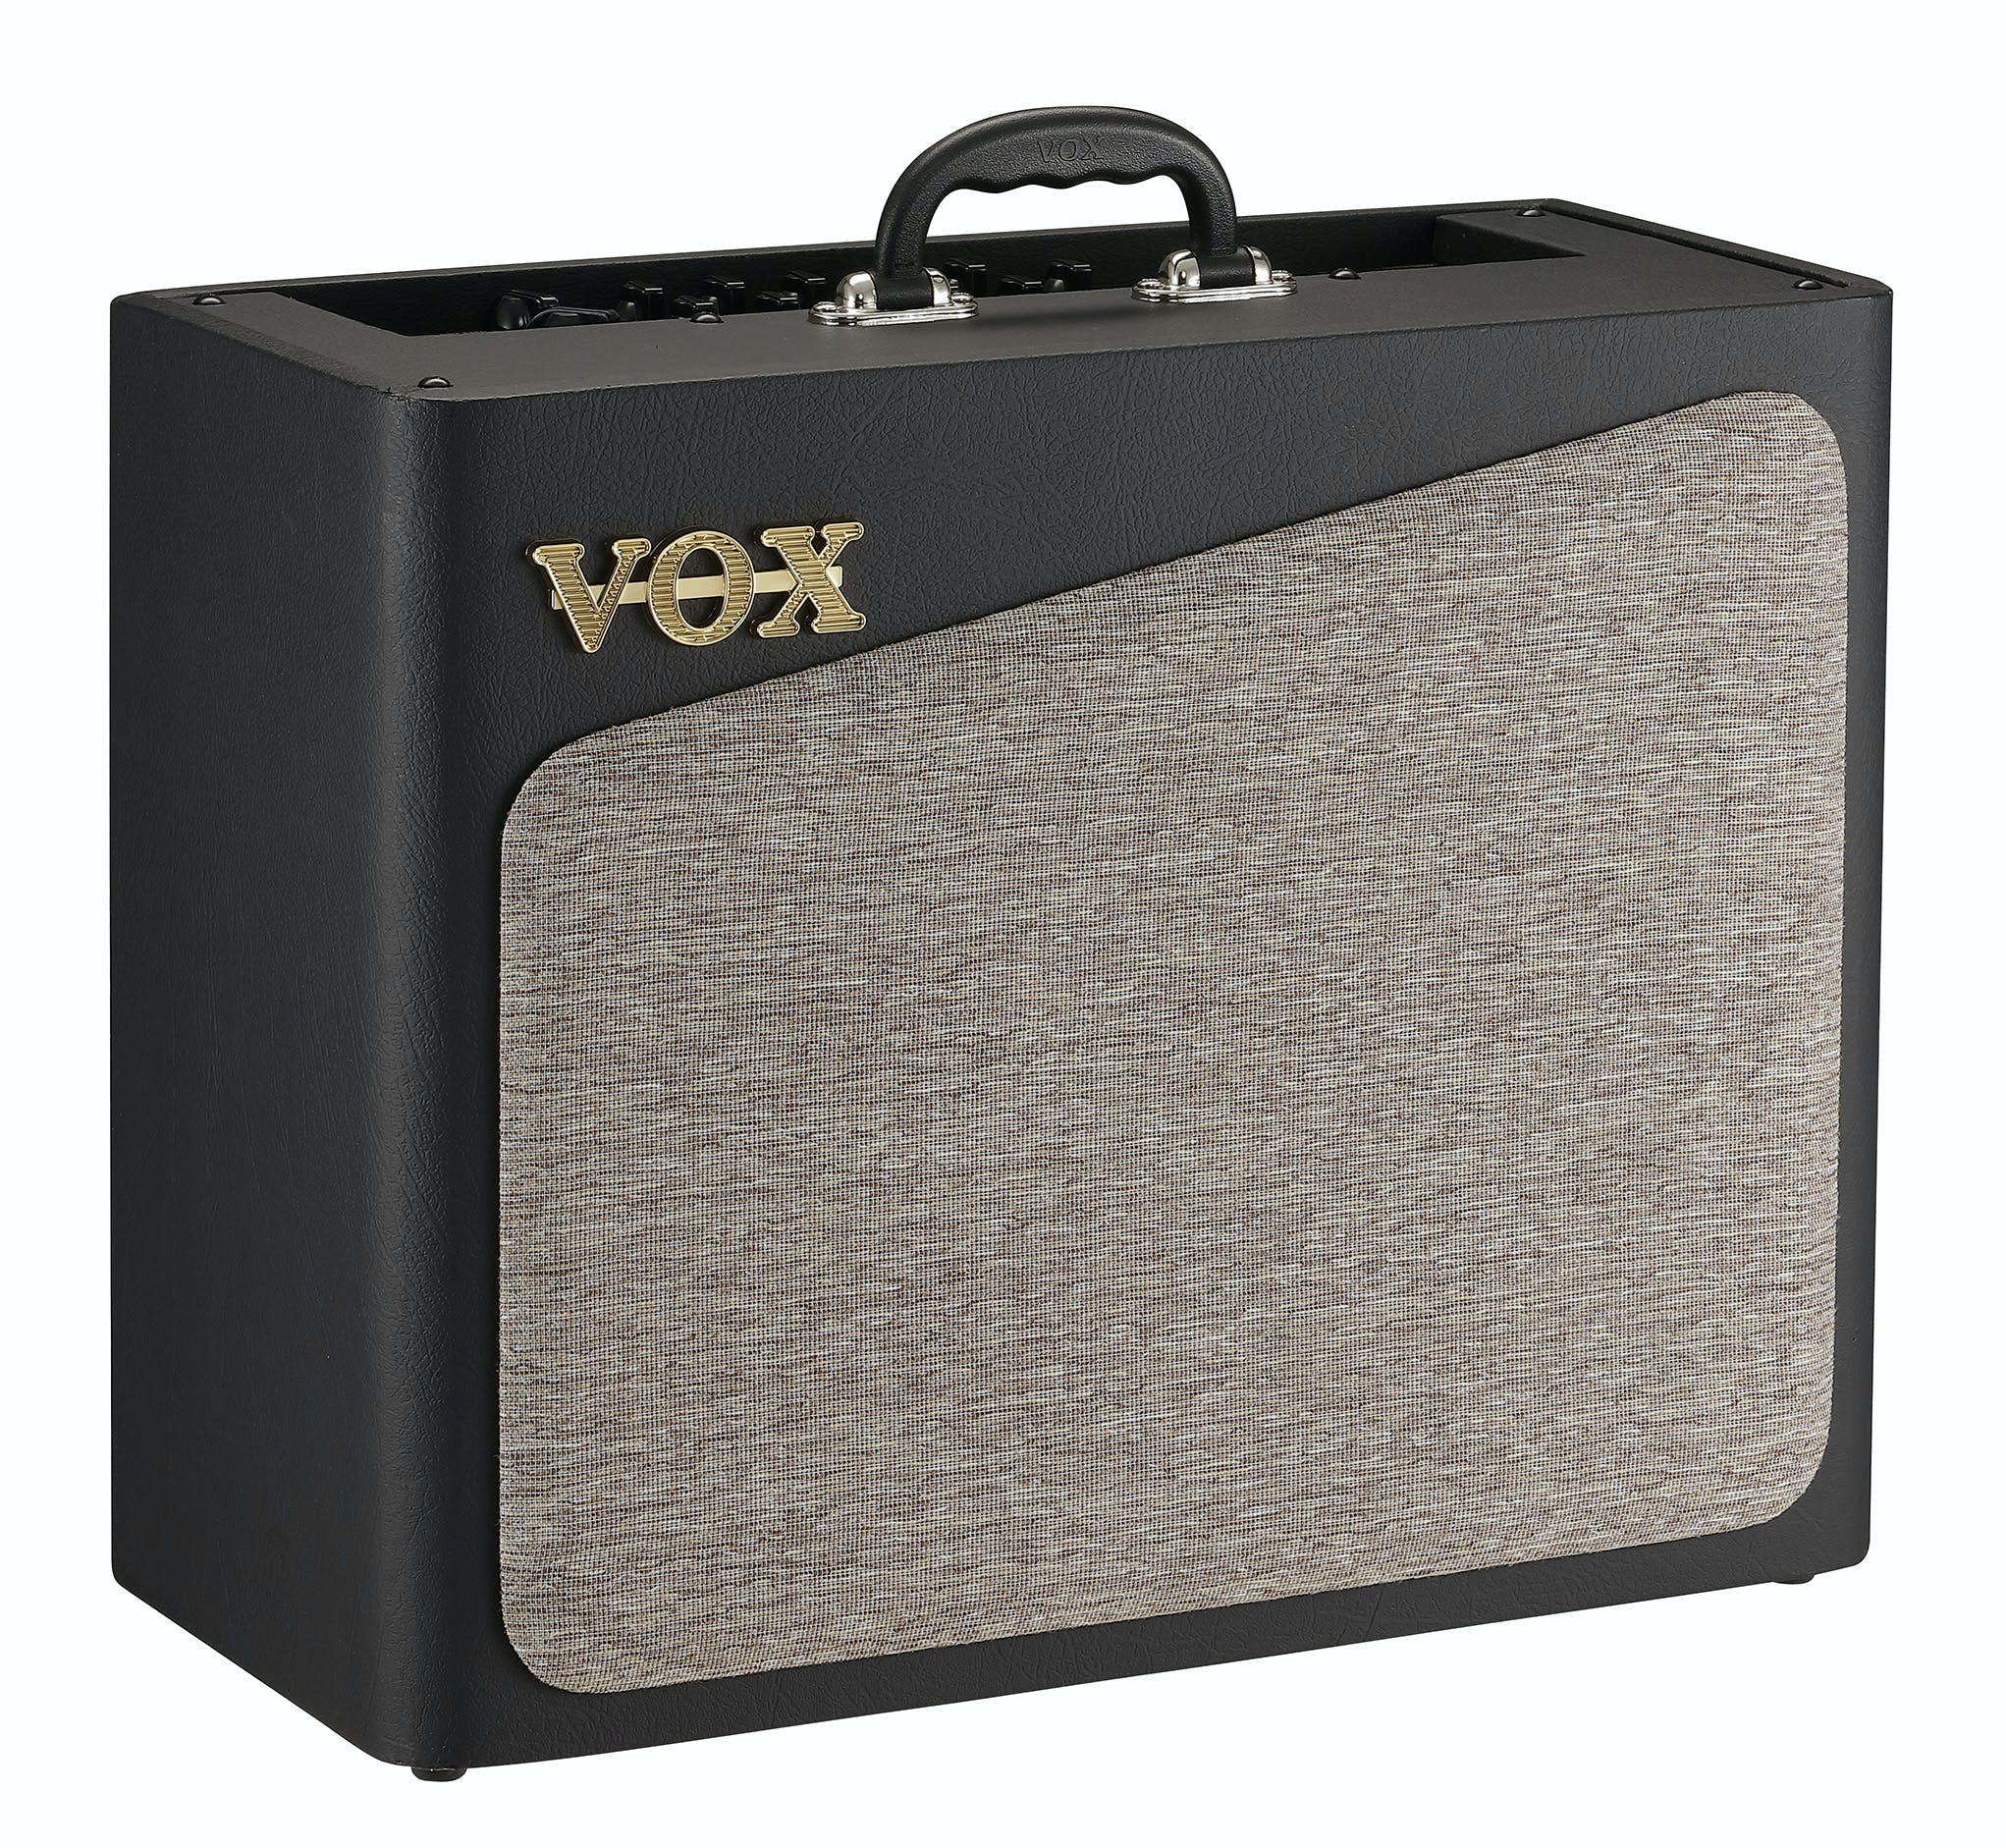 Vox Av30 Analog Valve Amplifier Andertons Music Co Guitar Headphone Amp Circuit